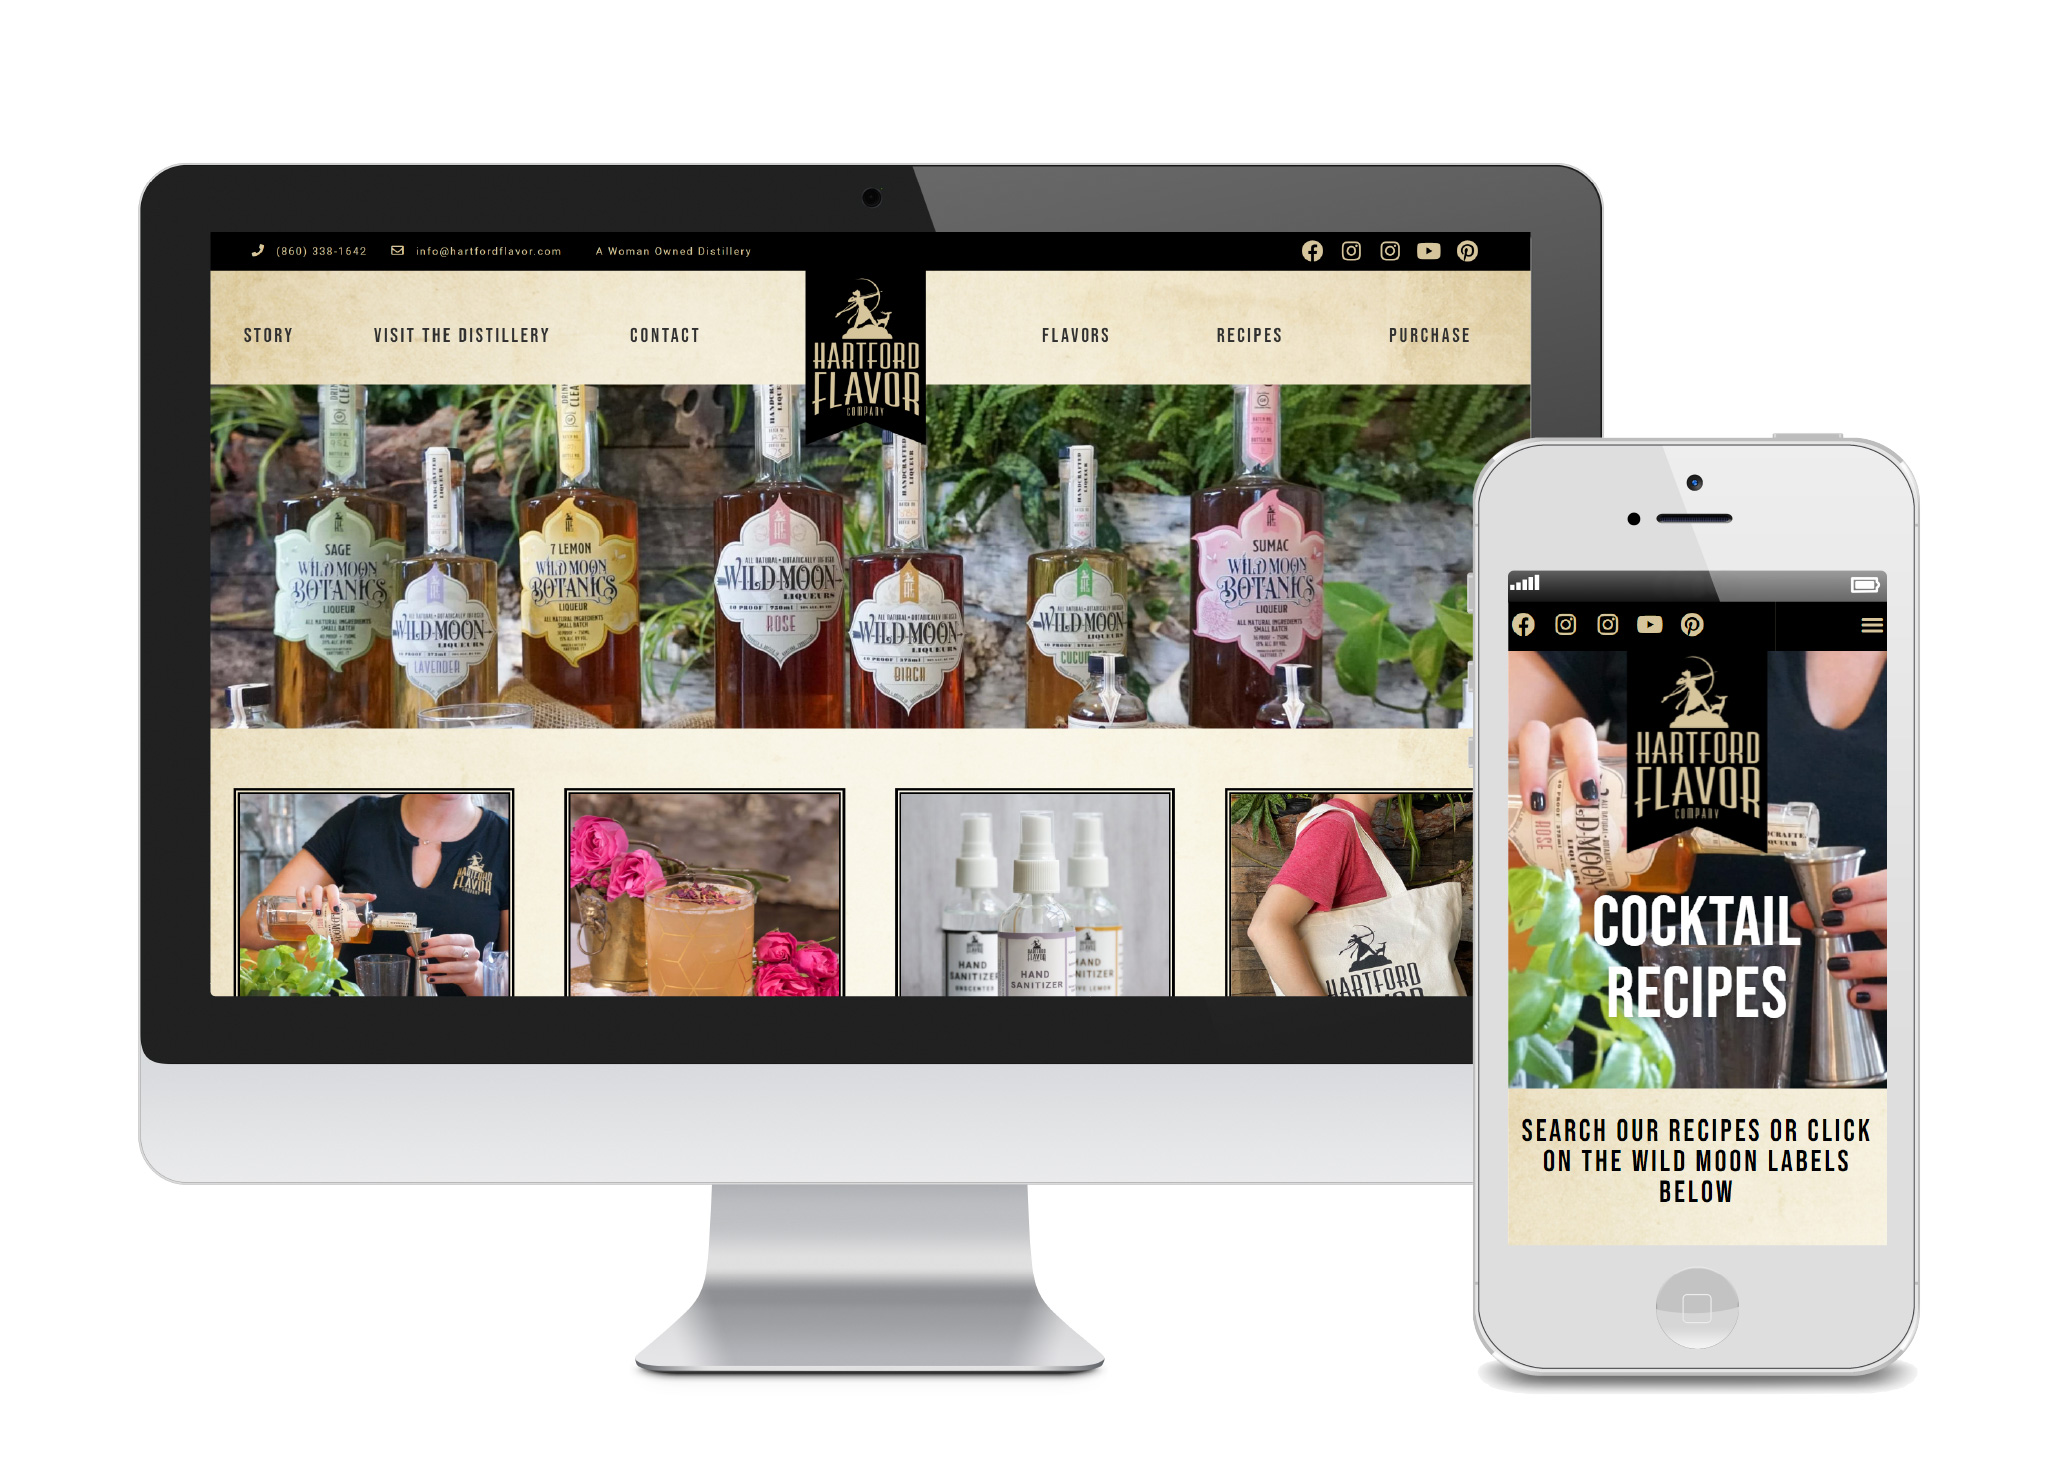 Hartford Flavor Company Launches New Website